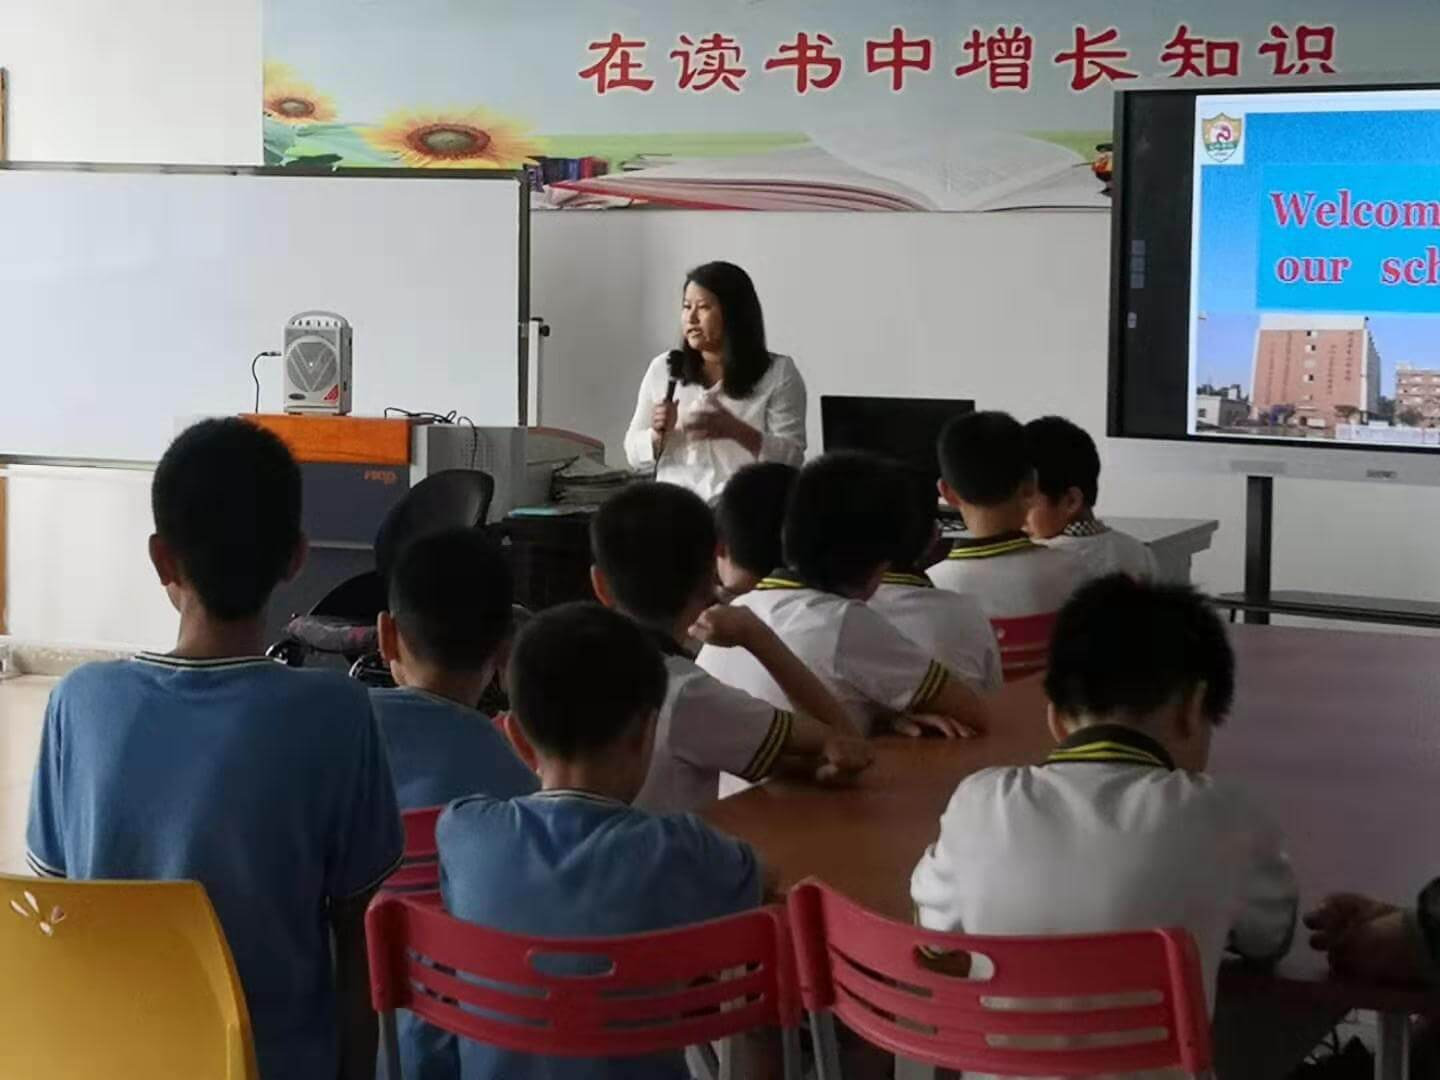 Ming presenting to children at a school